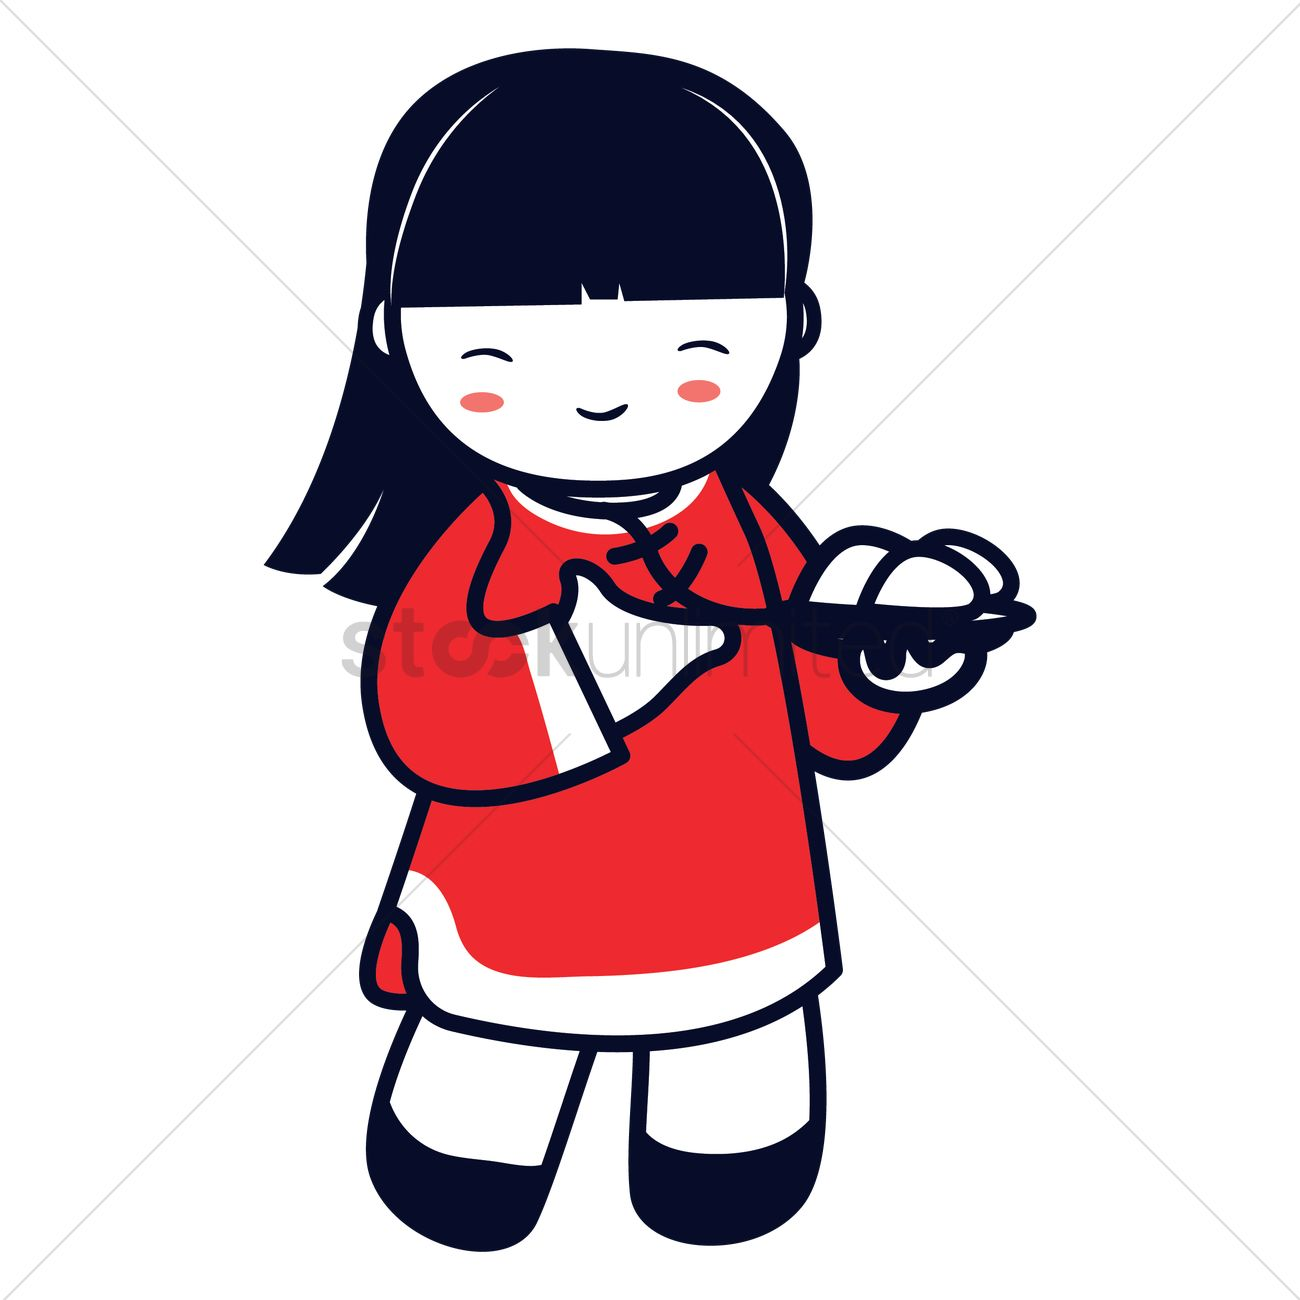 Chinese Girl Clipart at GetDrawings.com.